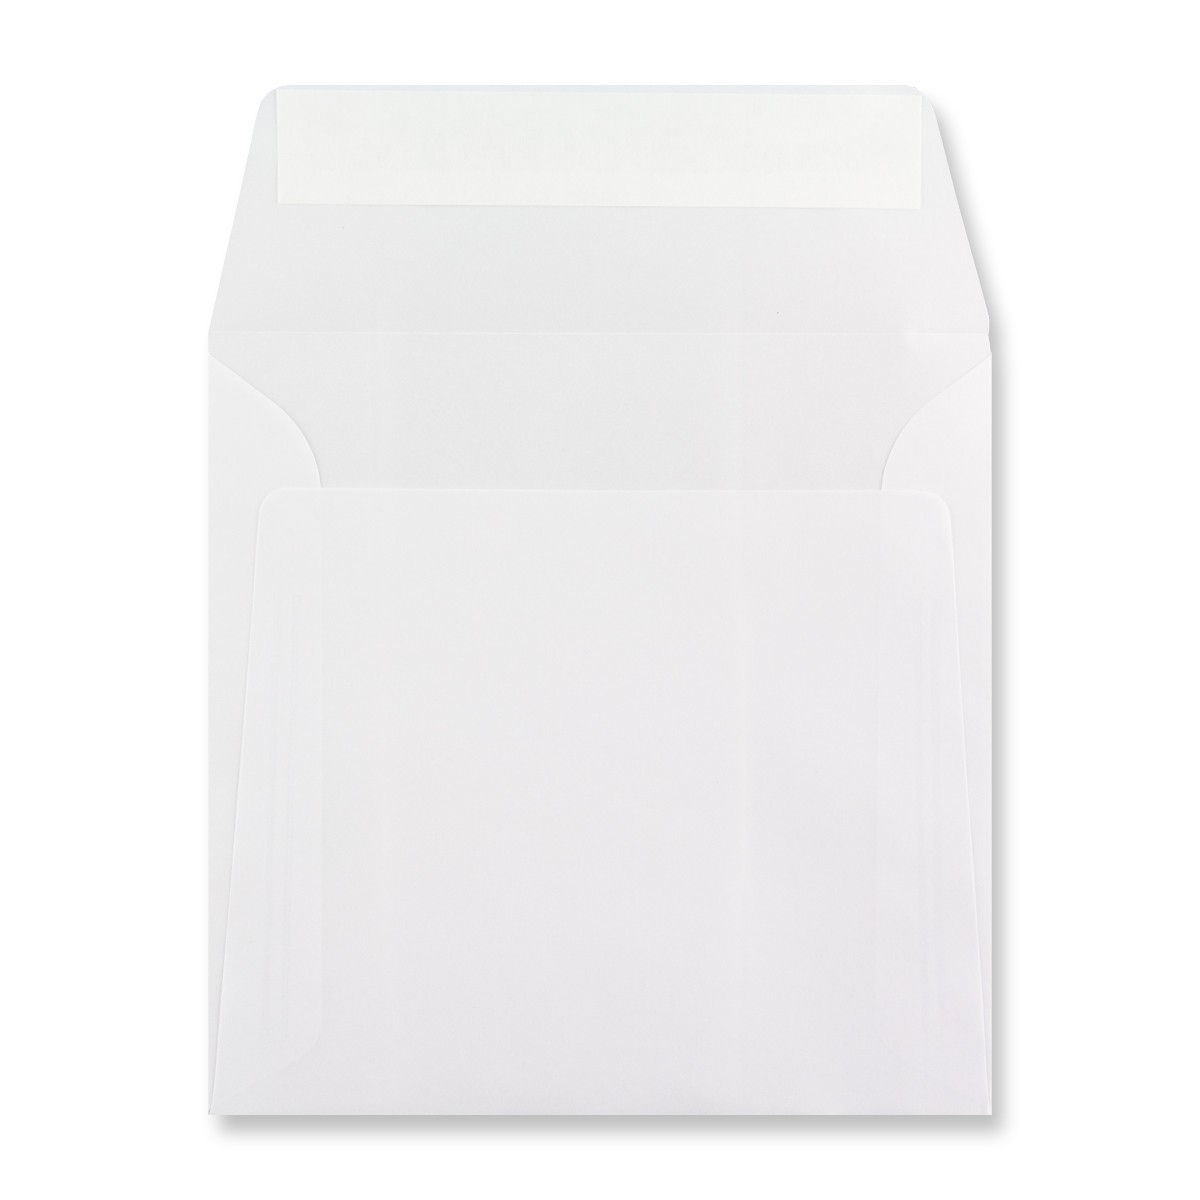 160 x 160MM WHITE TRANSLUCENT ENVELOPES